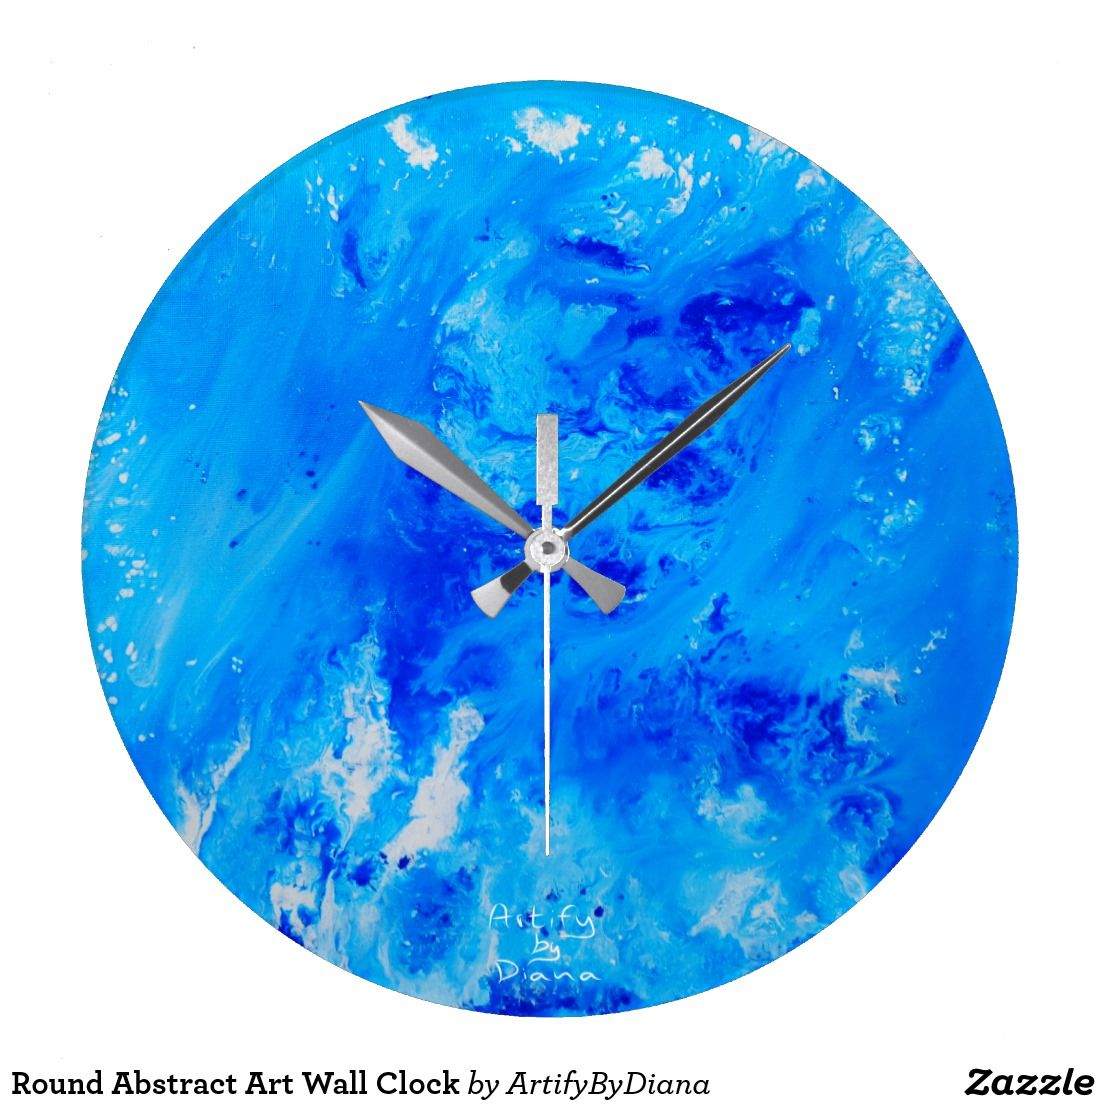 Round abstract art wall clock designed by artify by diana wall